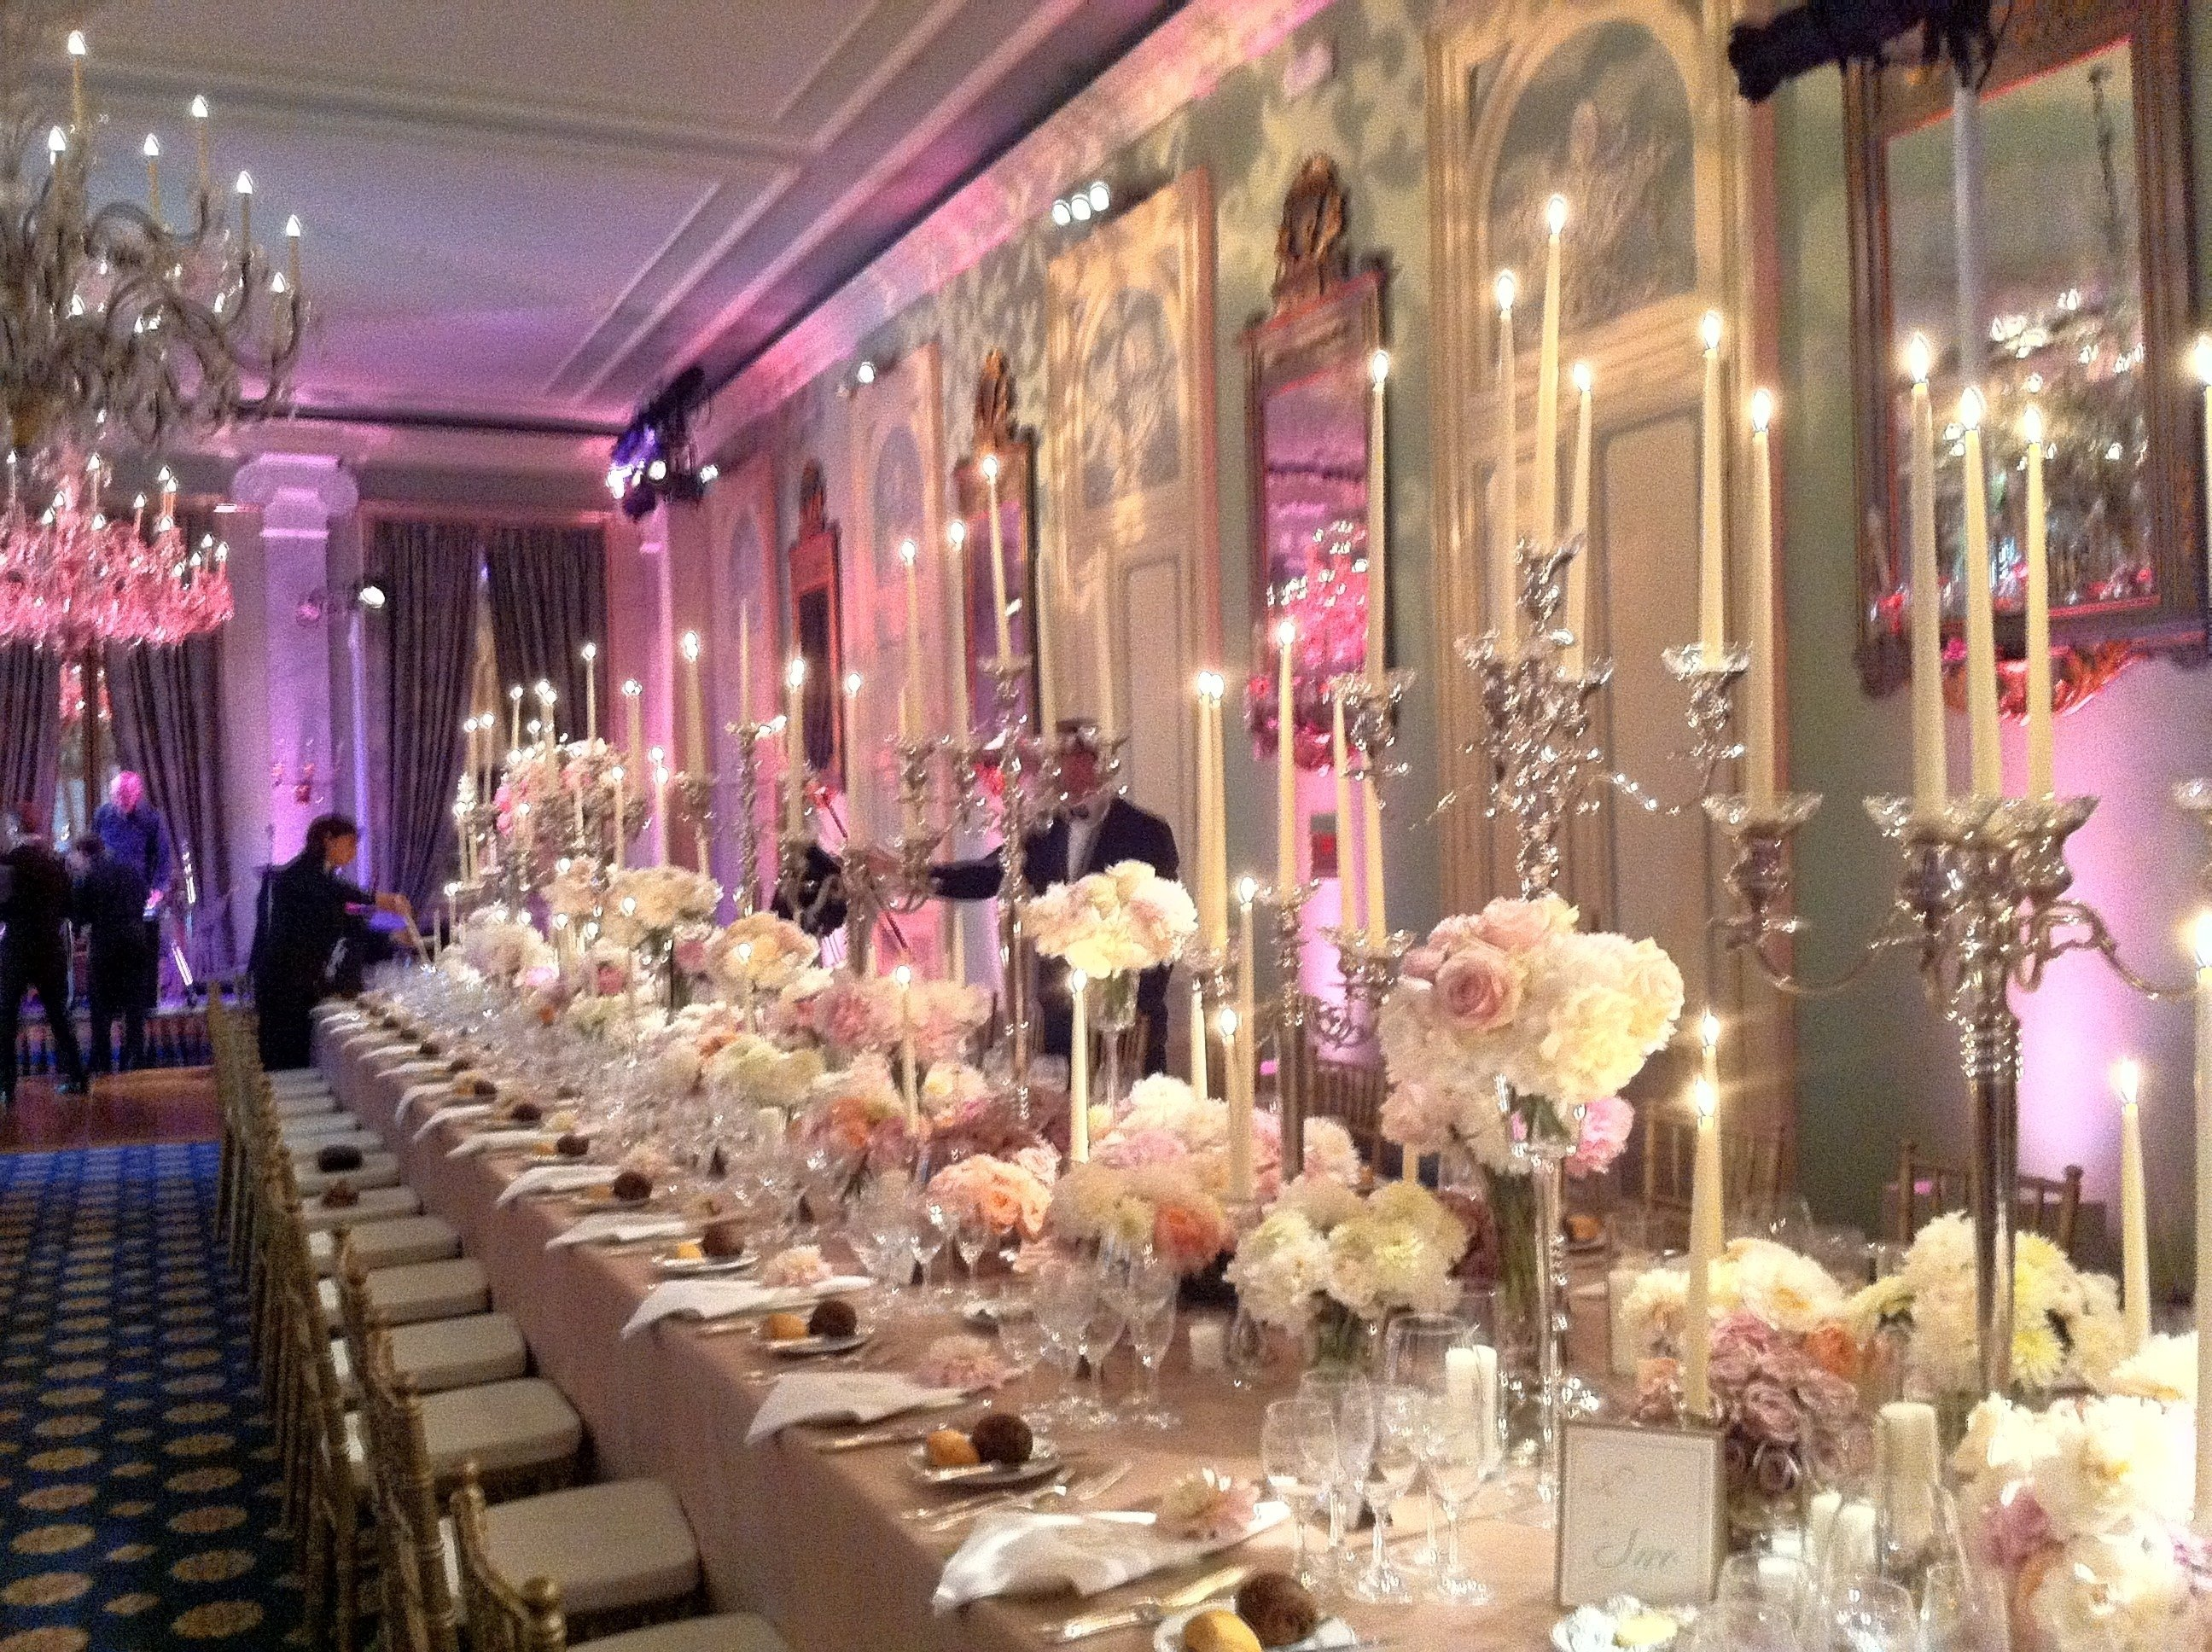 10 Attractive Ideas For A Small Wedding wedding 22 staggering small wedding ideas wedding buffet ideas on 2020